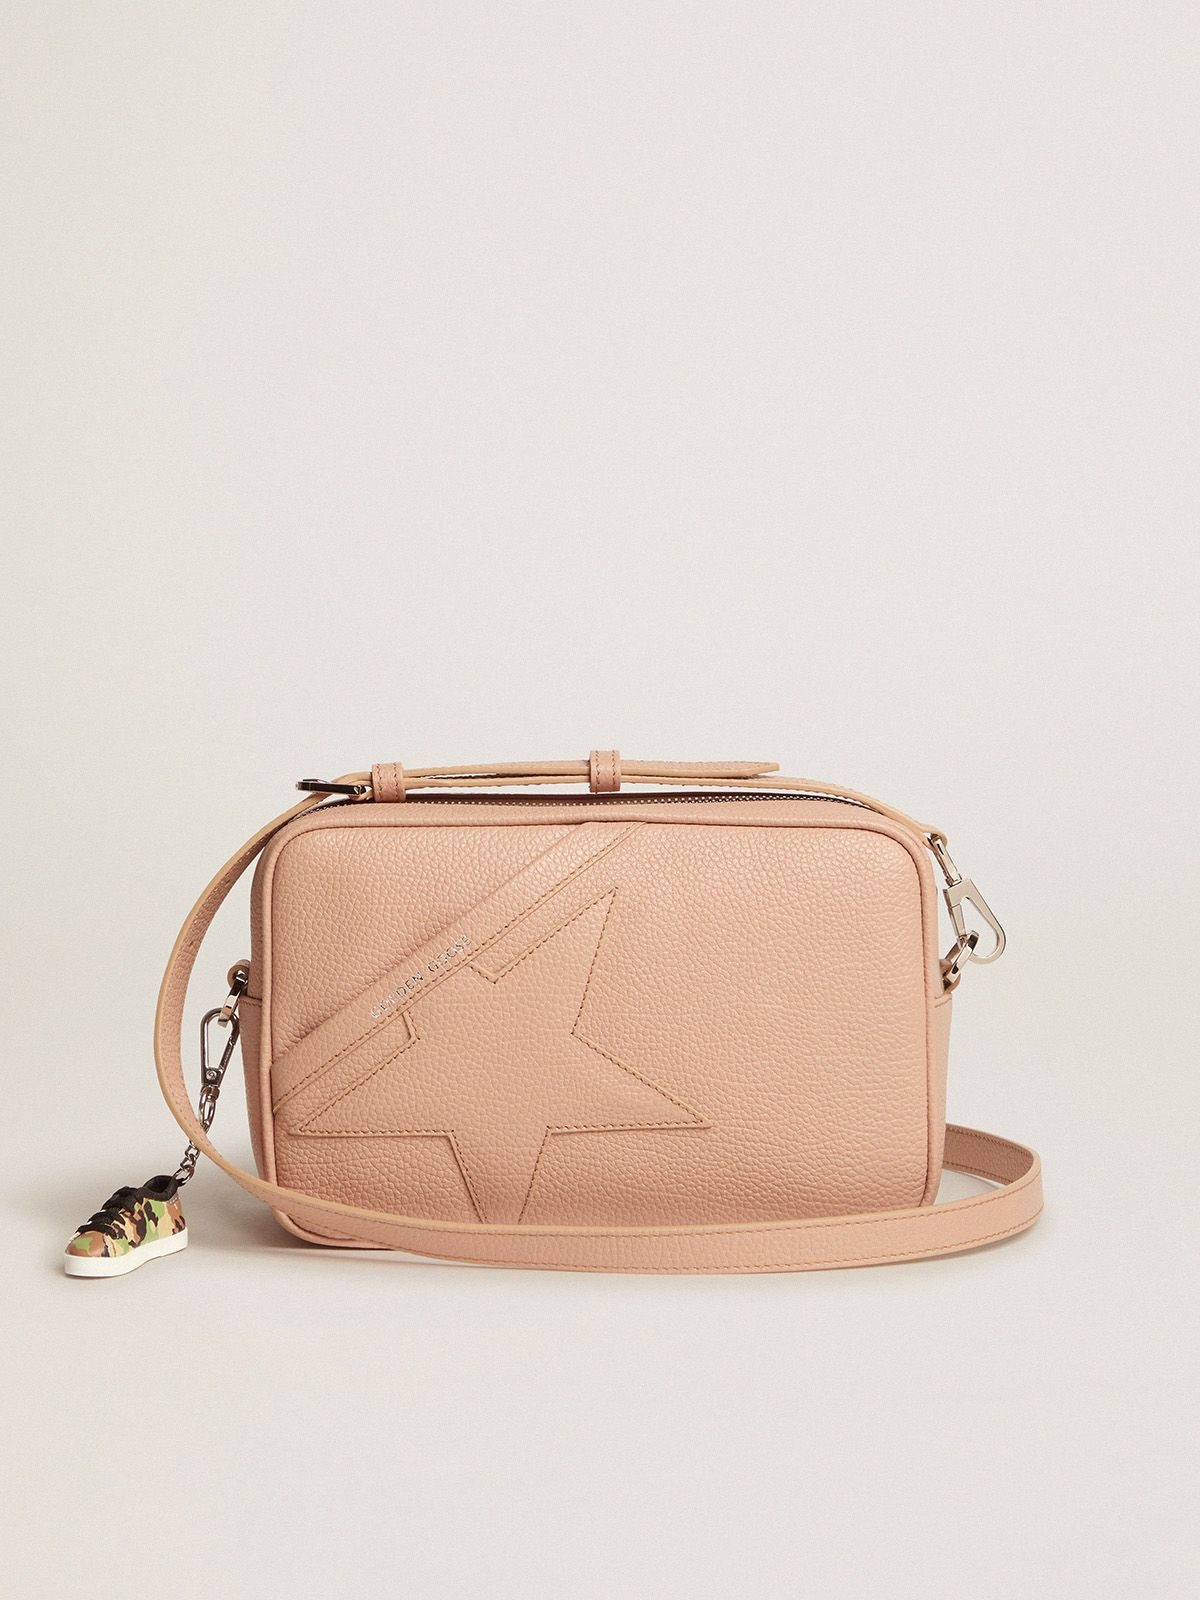 Nude Star Bag made of hammered leather